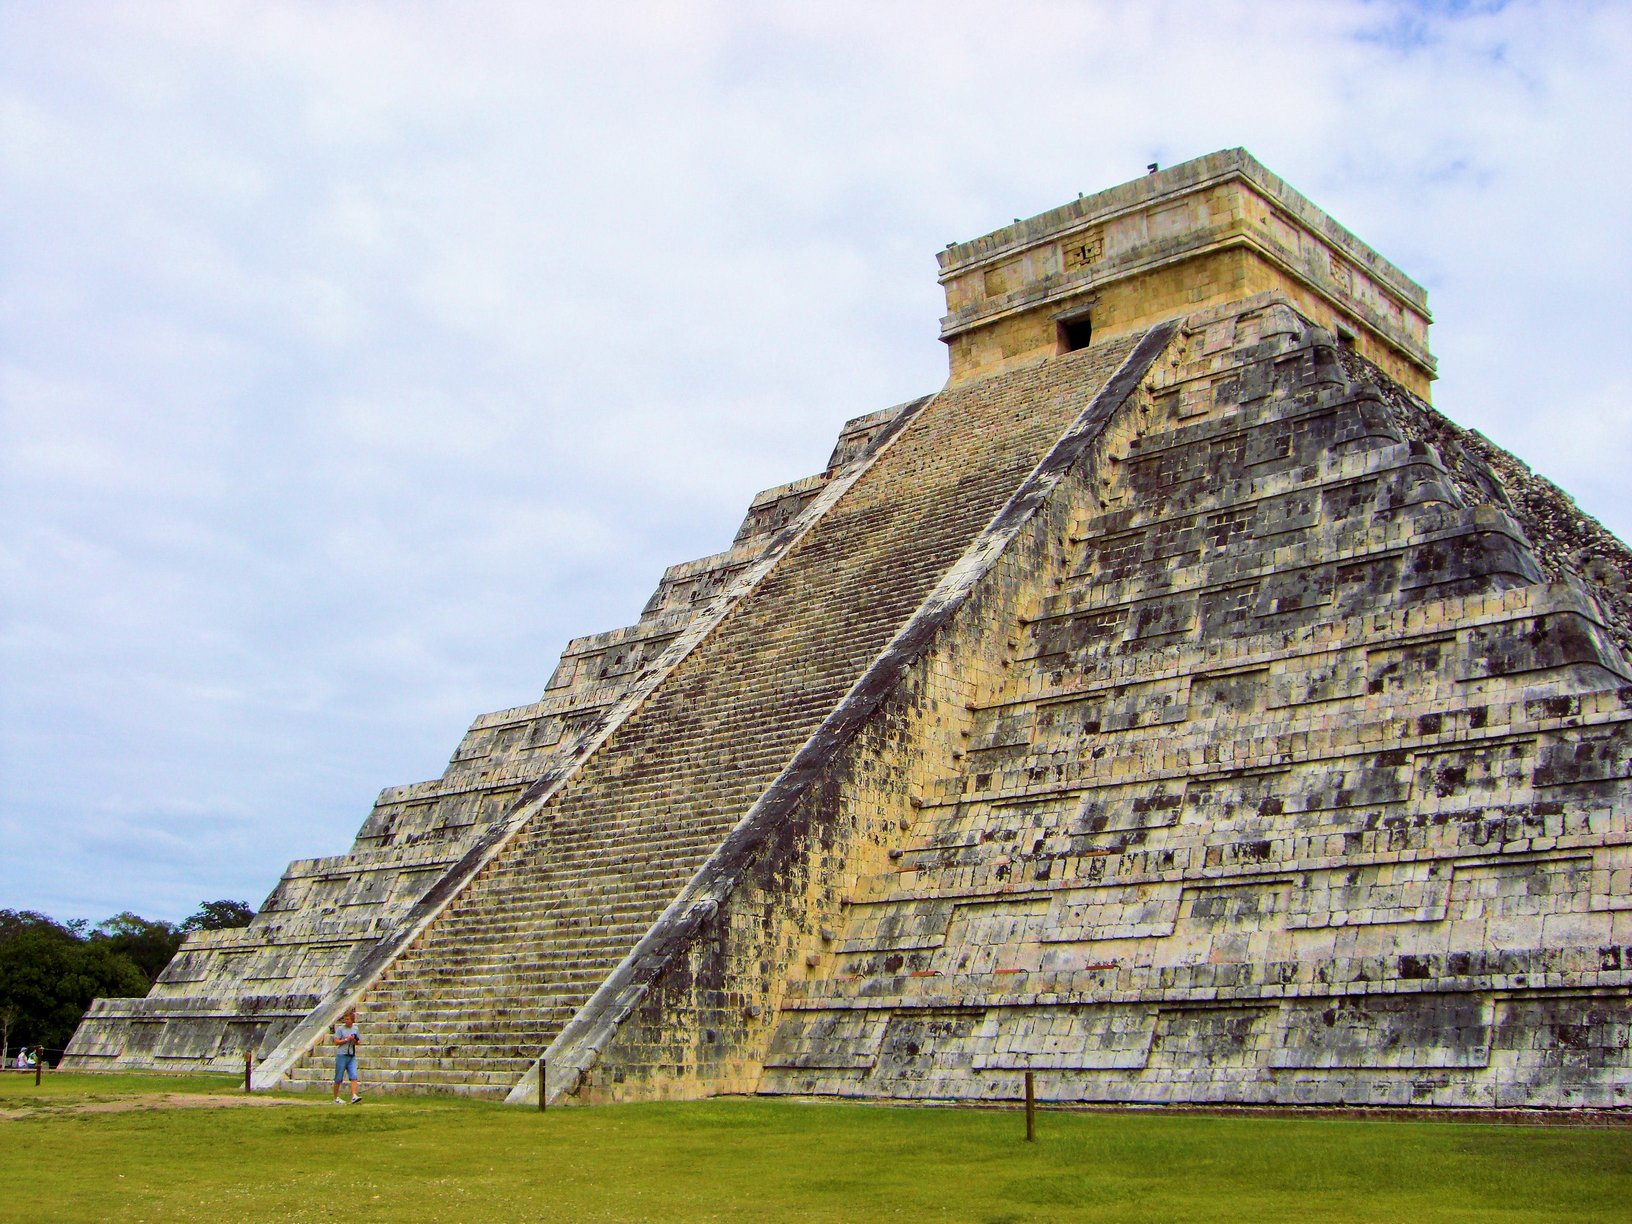 15 Great Ancient Structures Of The World How Many Have